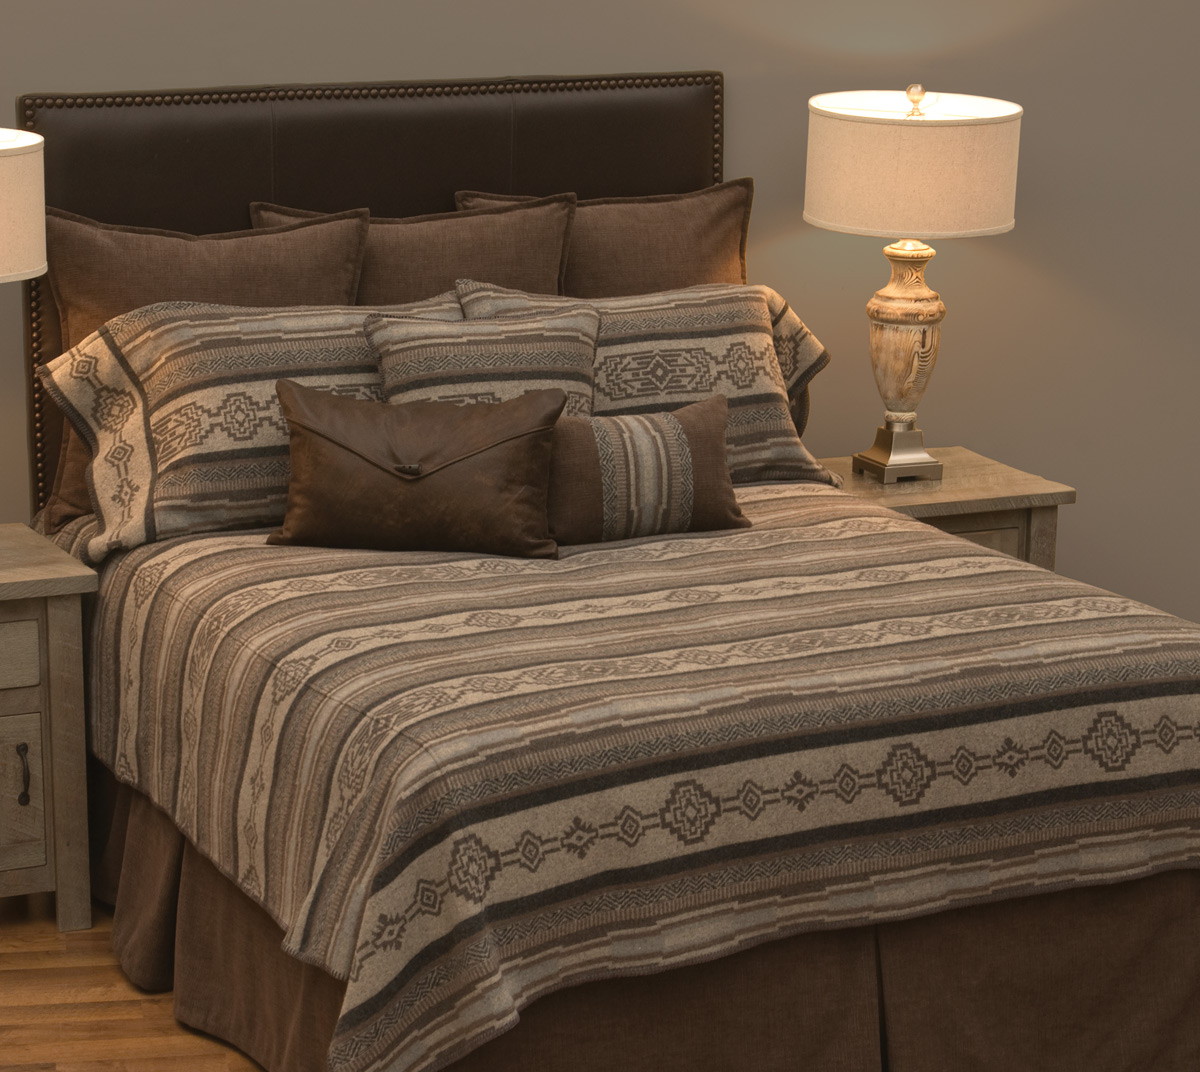 Lodge Lux Deluxe Bed Set - Super King